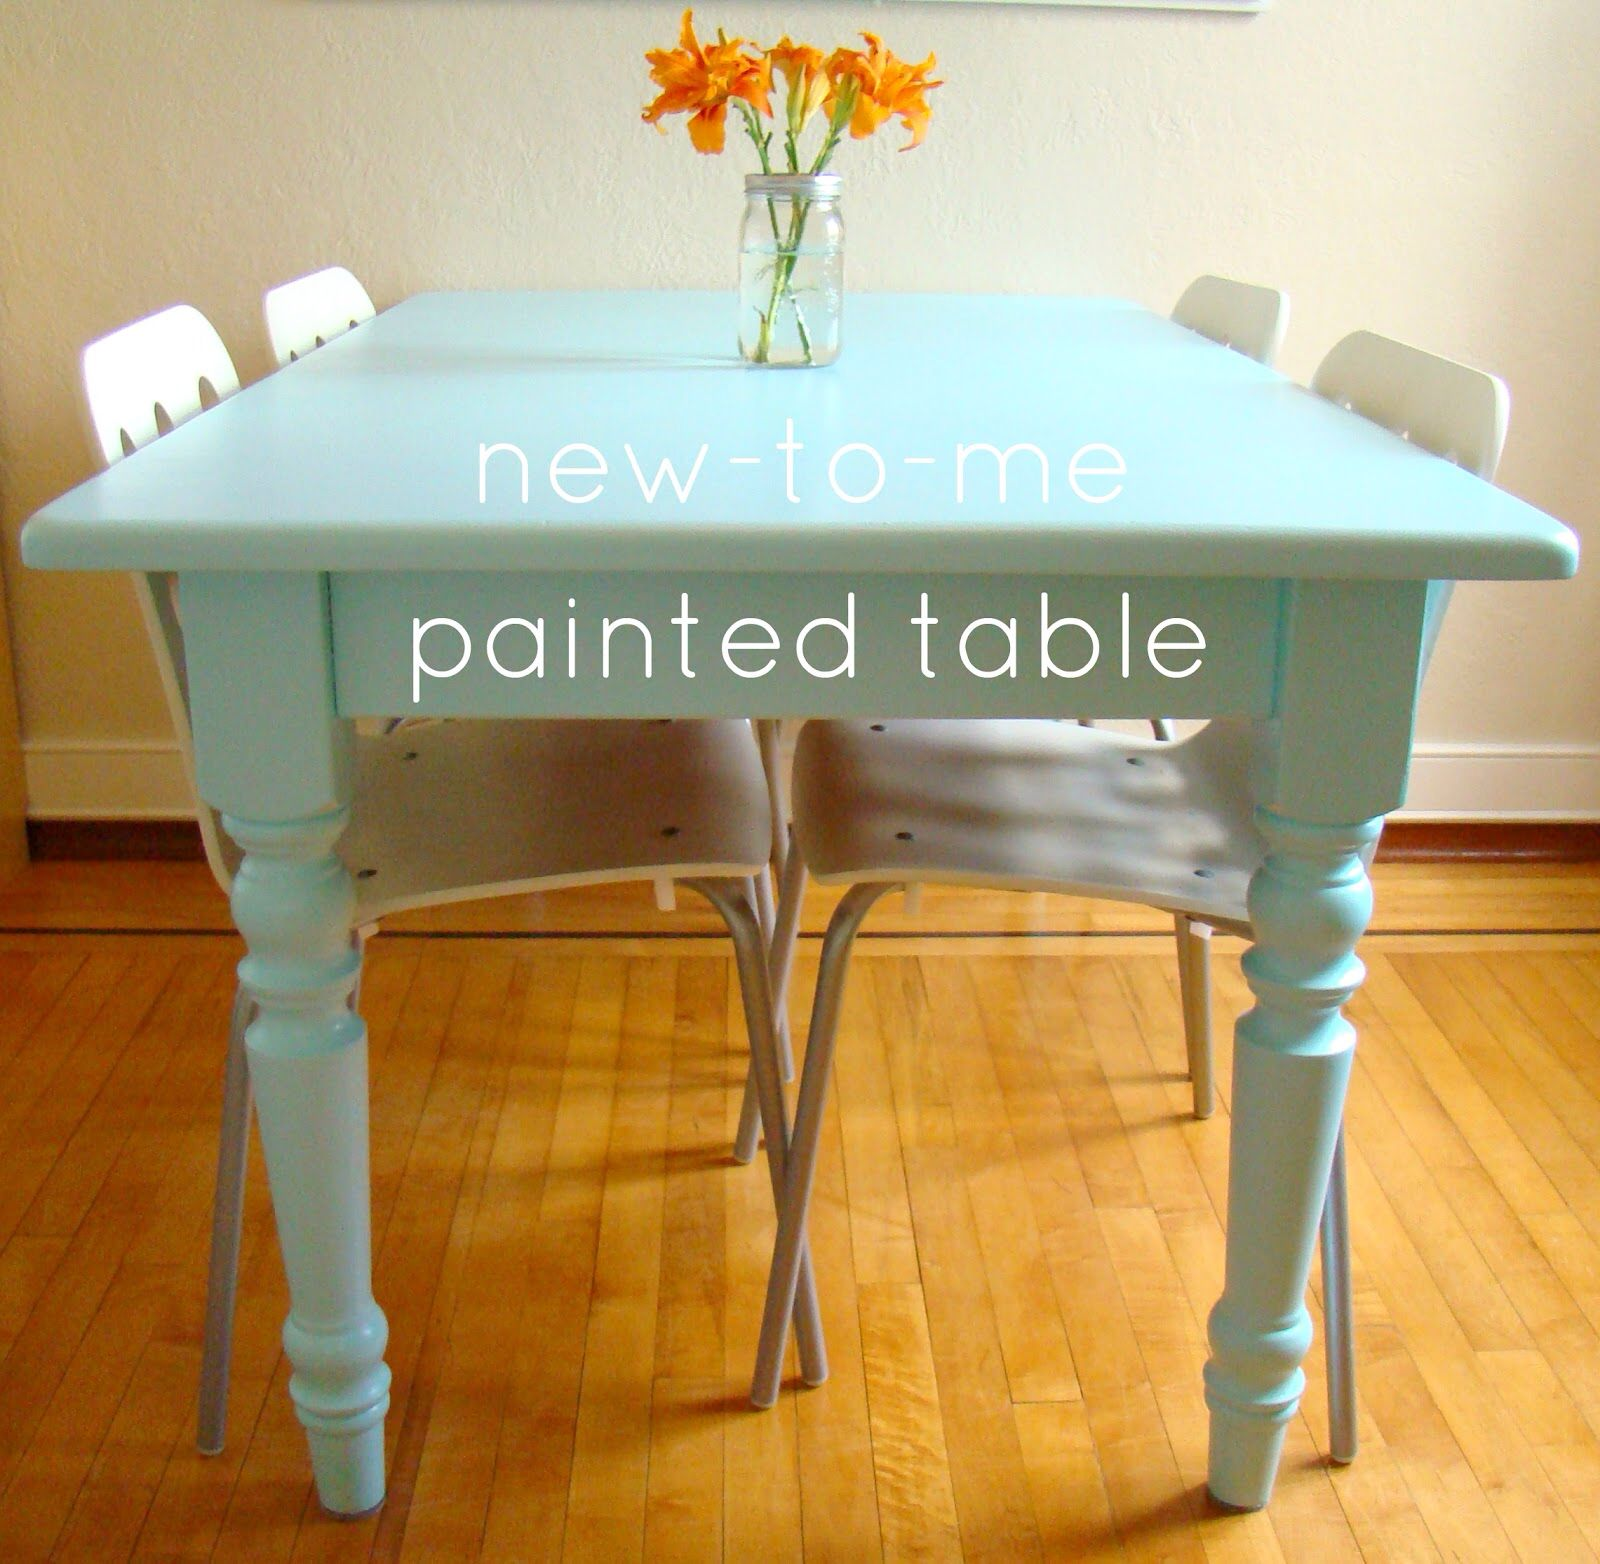 Kitchen Table Top Material: The Material Colour And Style Of These Table And Chairs Is